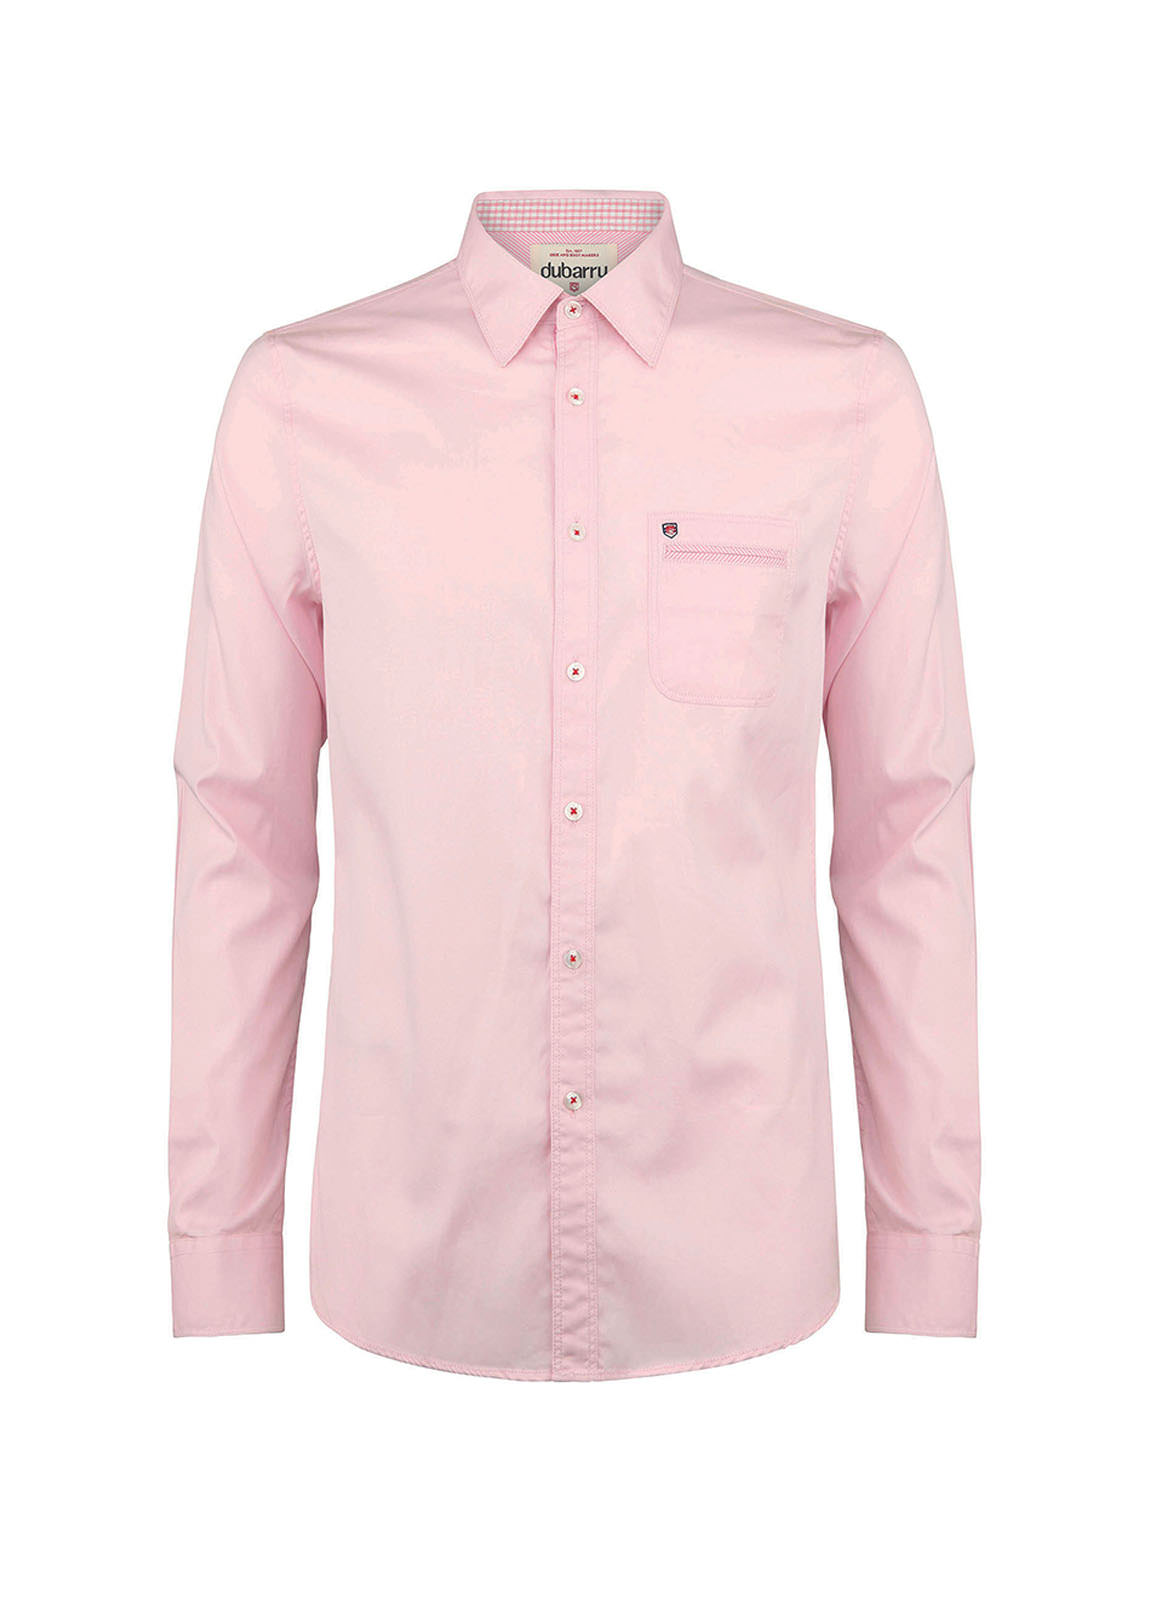 Dubarry_ Ballsbridge Cotton Shirt - Pink_Image_2